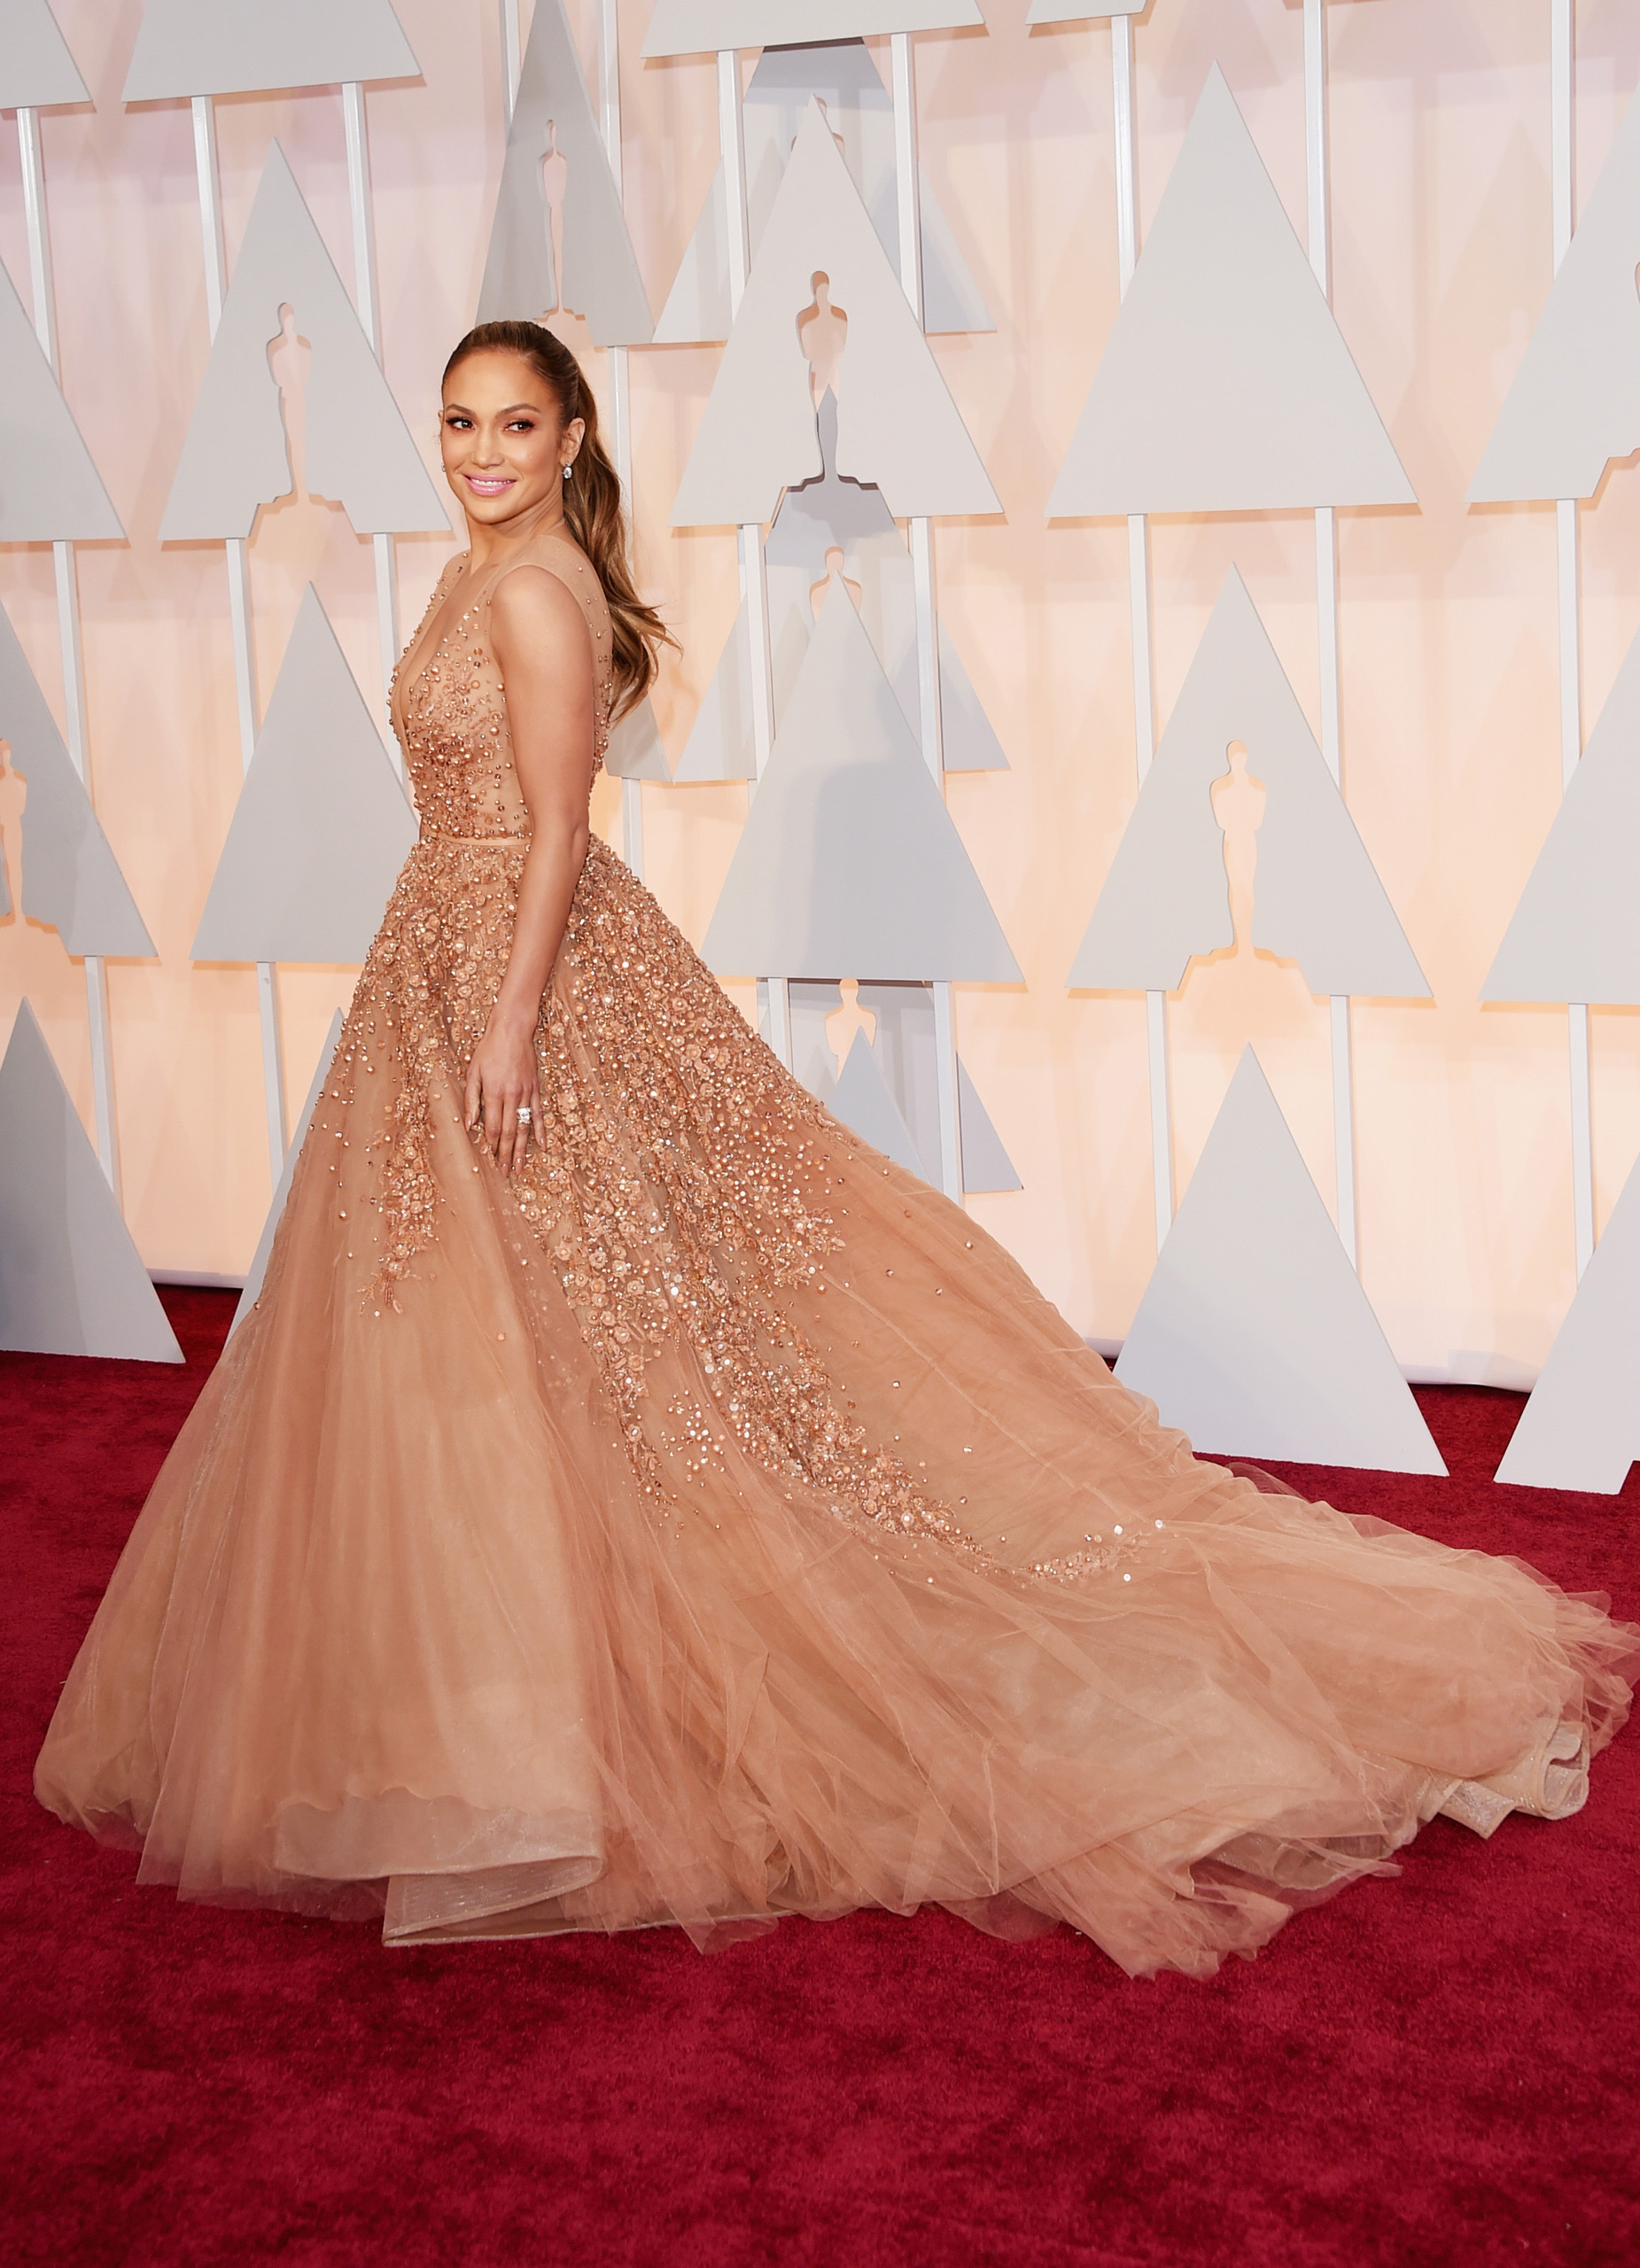 Jennifer Lopez attends the 87th Annual Academy Awards on Feb. 22, 2015 in Hollywood, Calif.